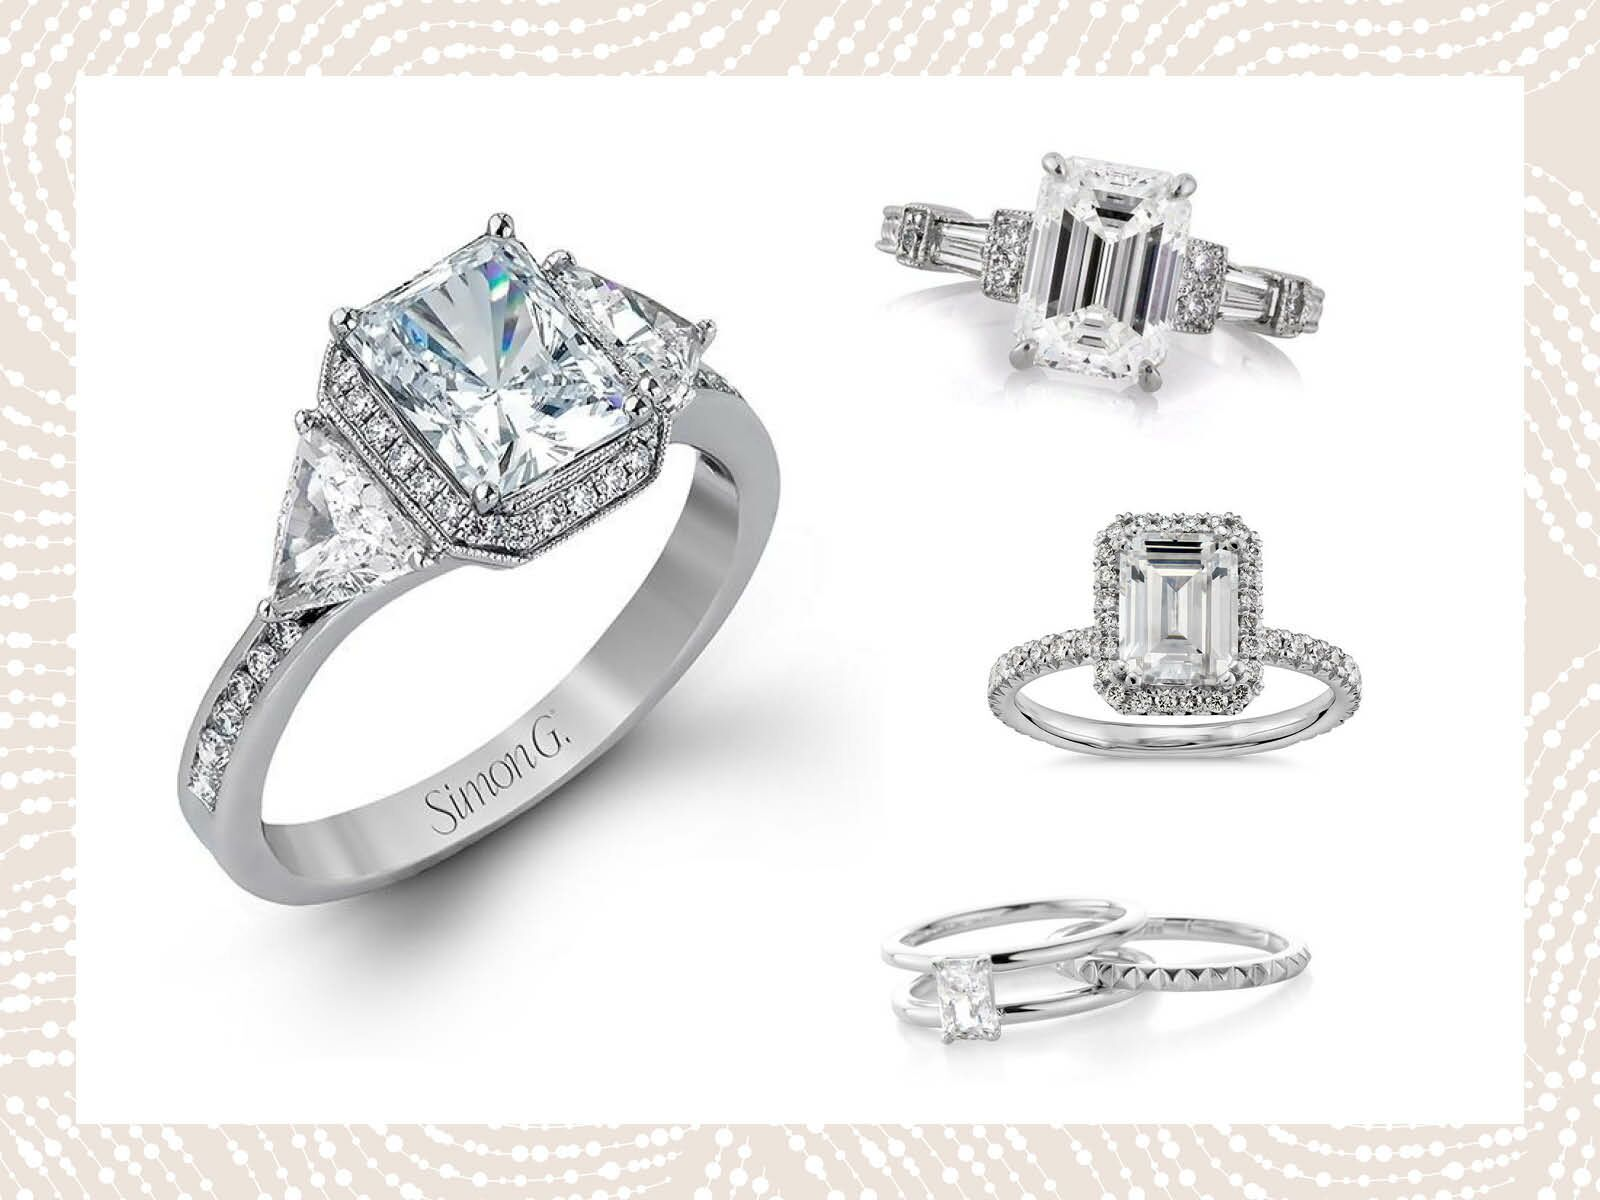 Emerald Cut Engagement Rings You Can Shop Now